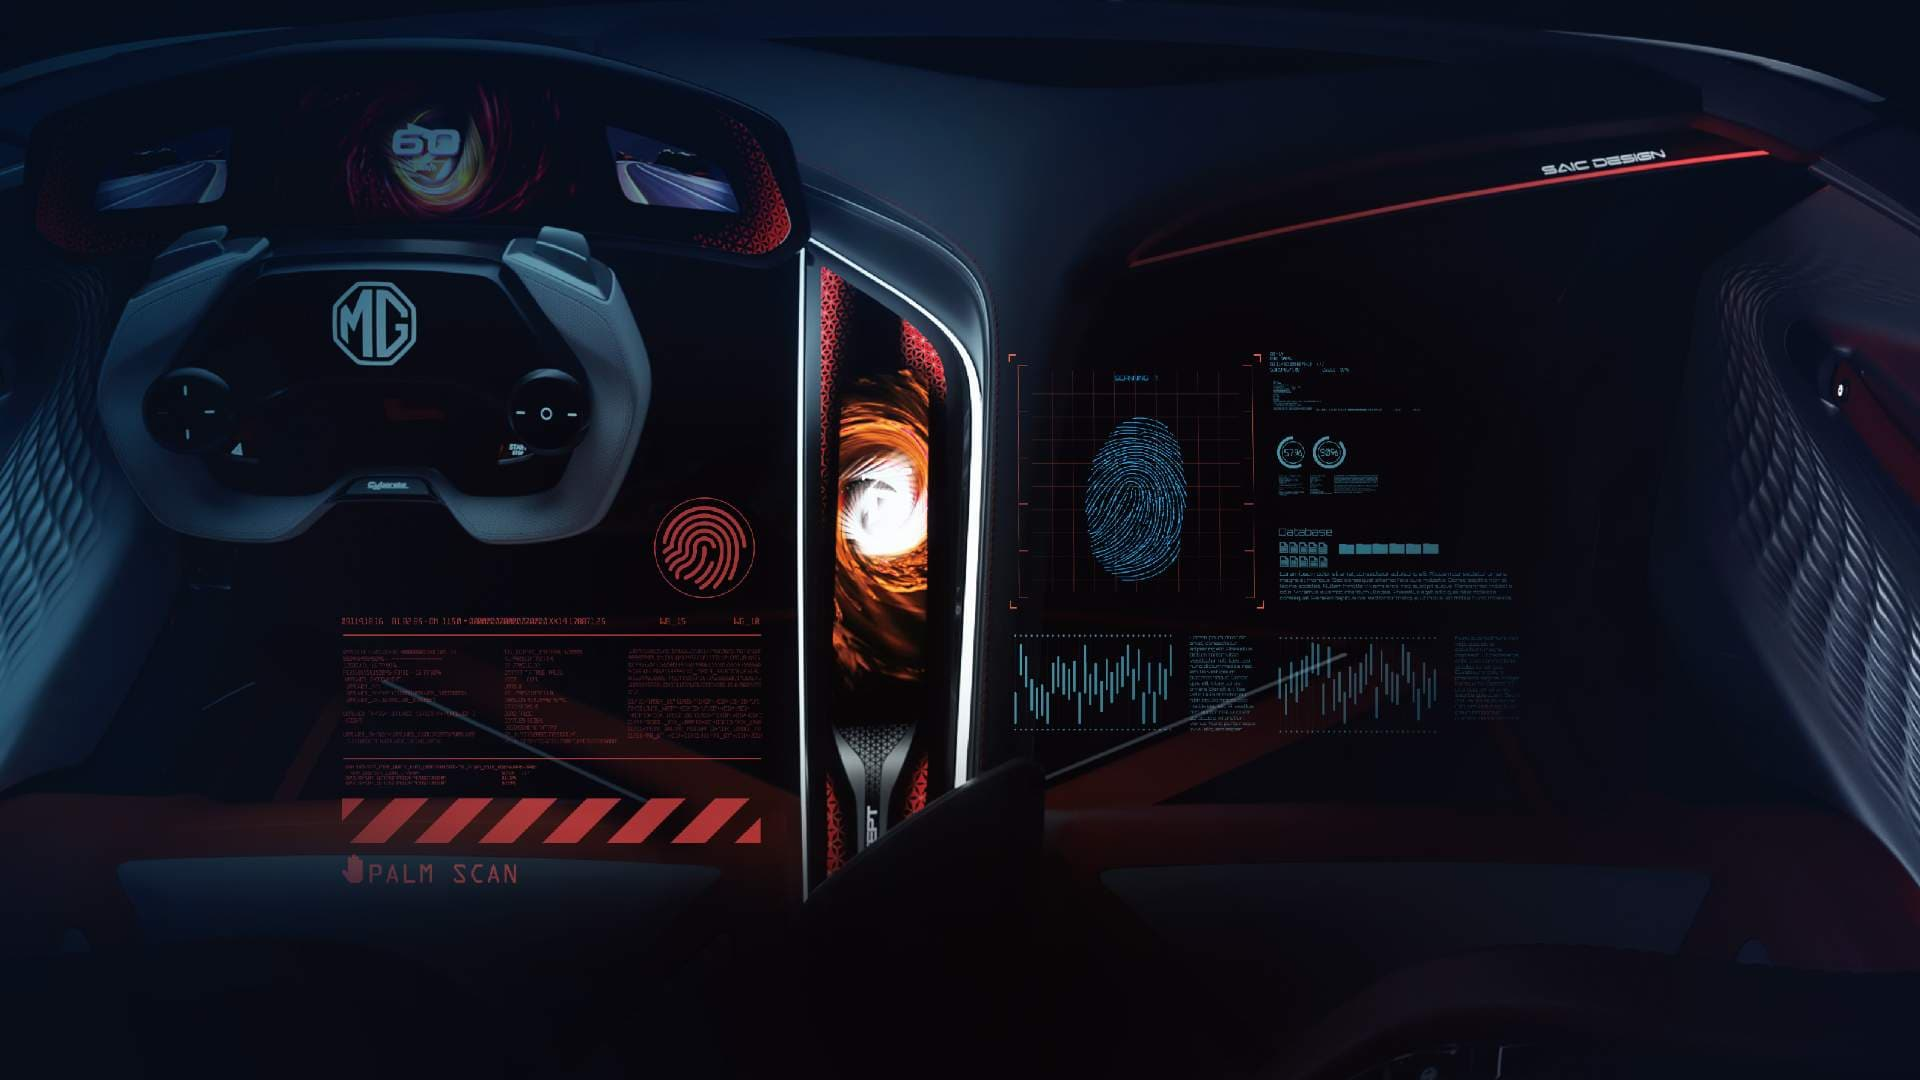 The MG Cyberster has a gaming-themed interior - which will, of course, be watered down for the production model. Image: MG